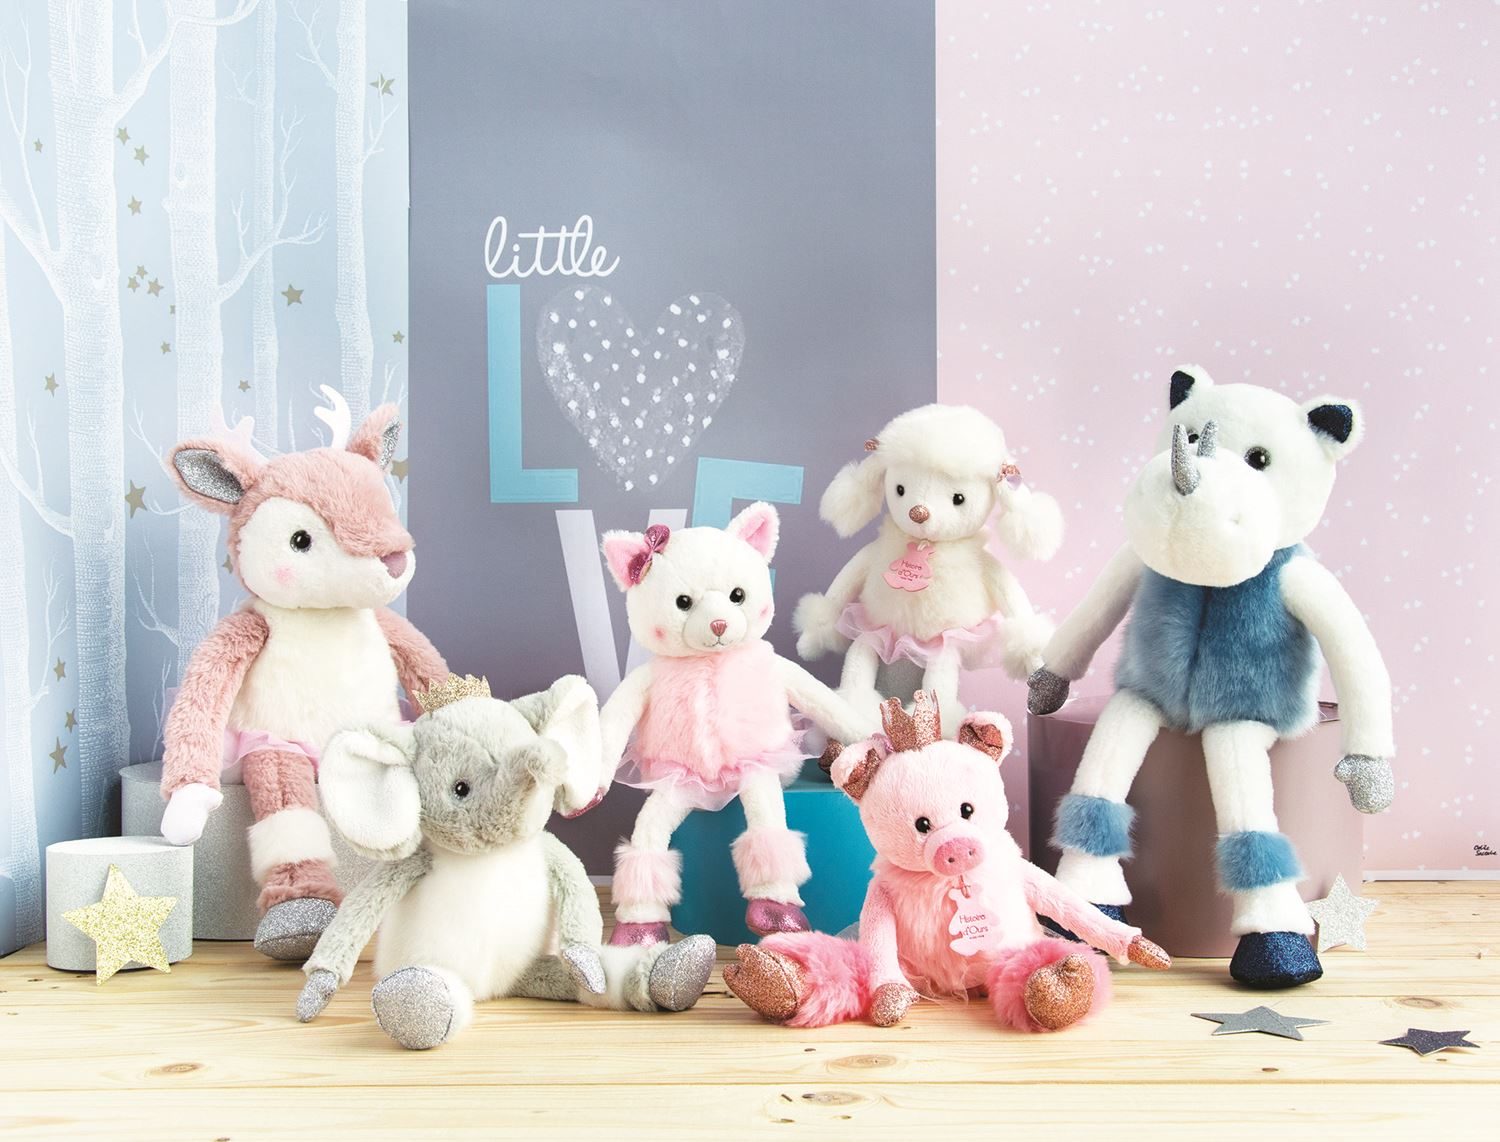 New Christmas collection Twist by Doudou et Compagnie